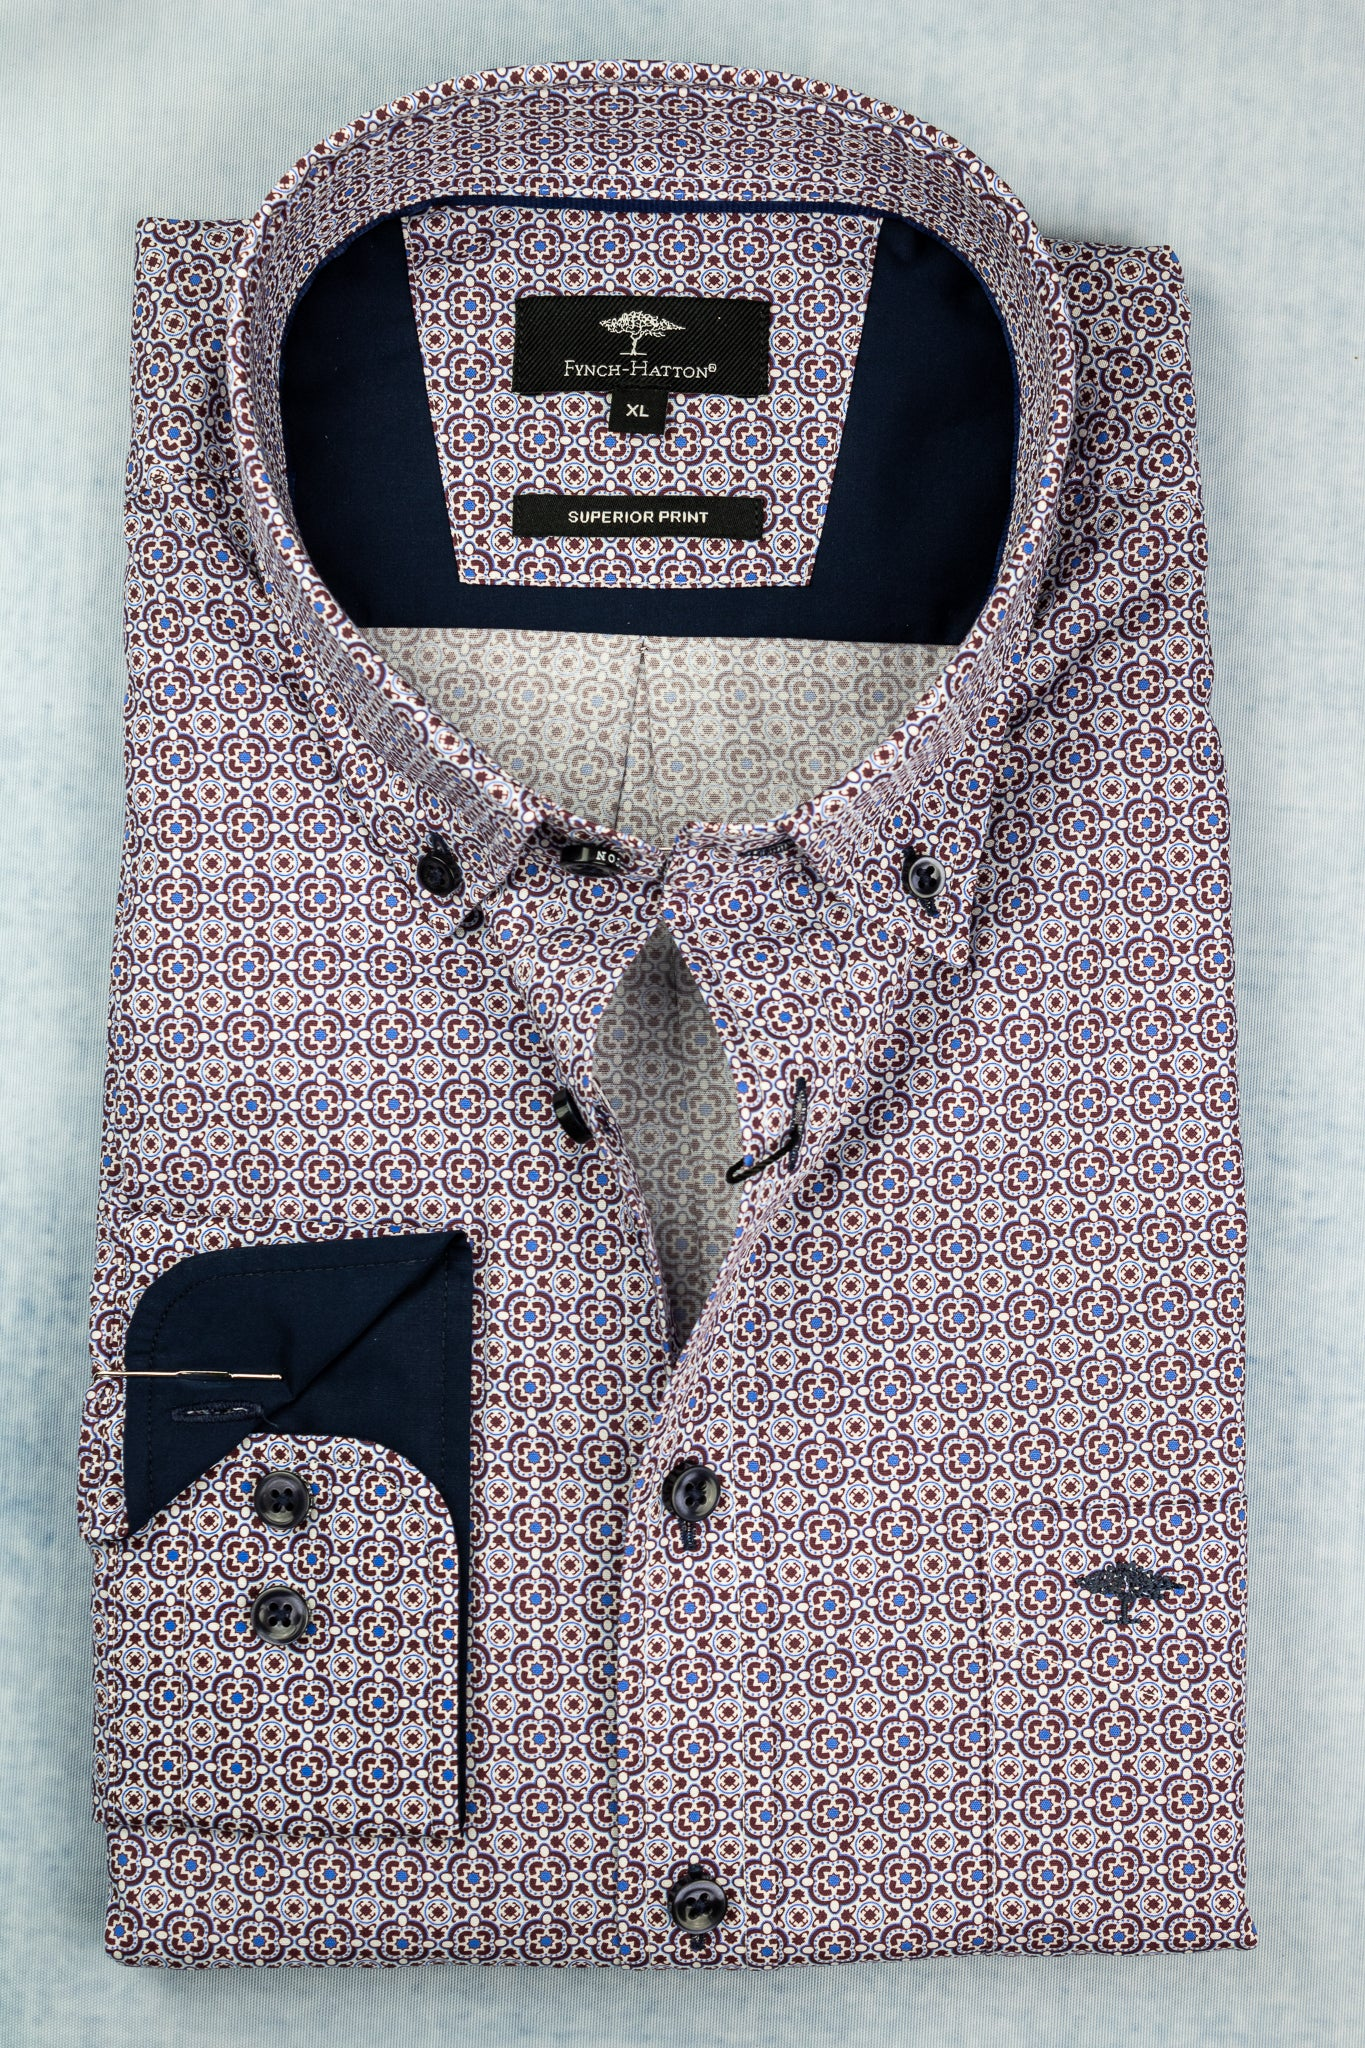 Fynch-Hatton 12208000 | Square Print Shirt